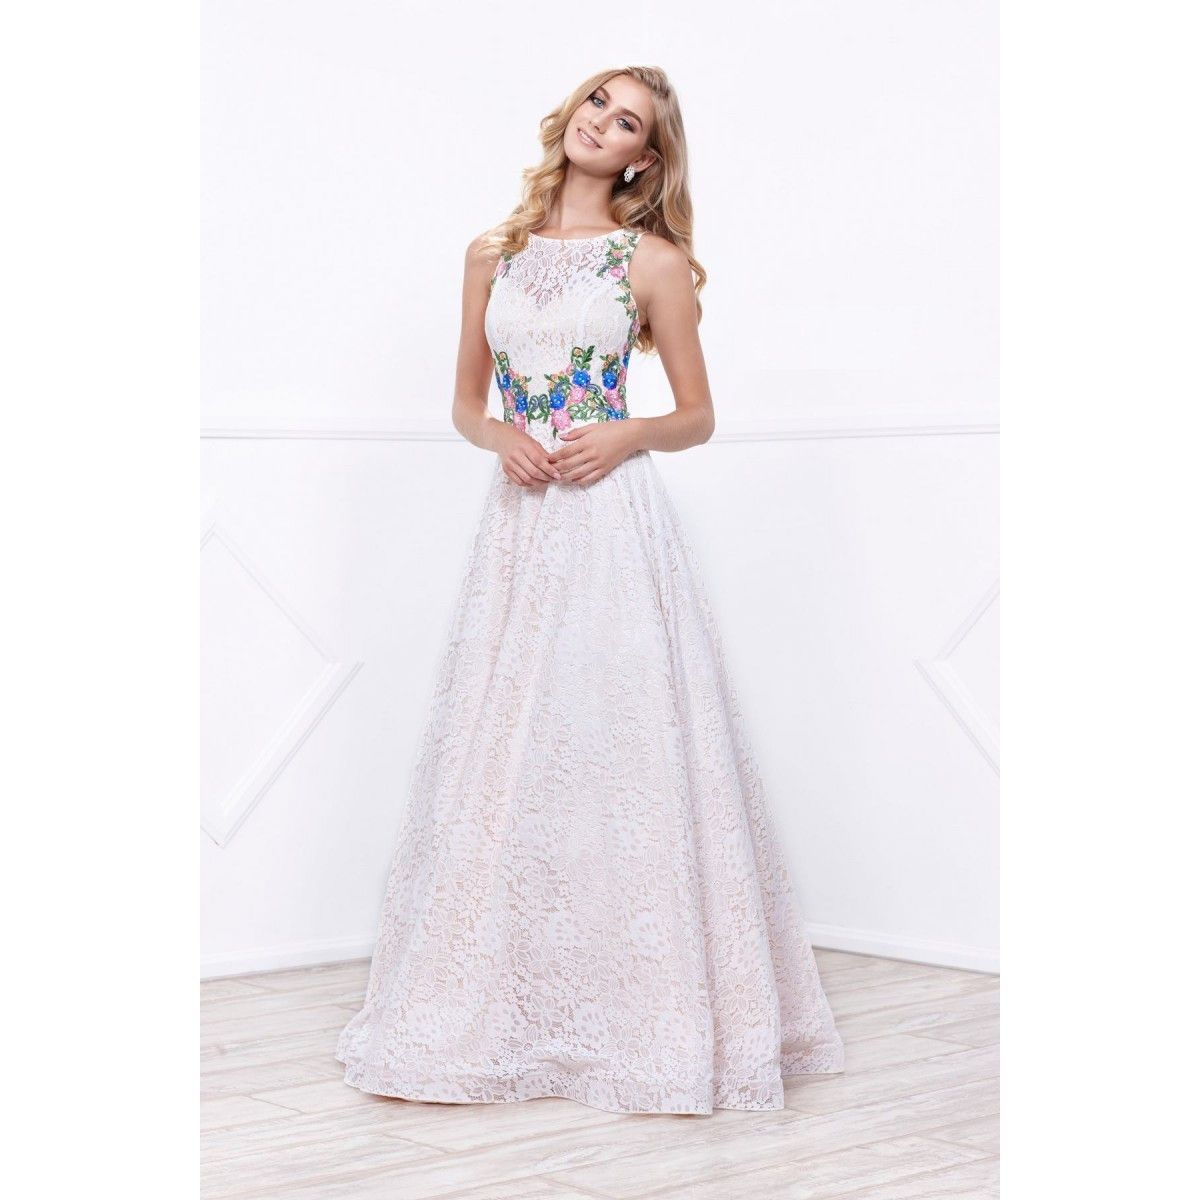 2017 Affordable Fairytale Ivory & Gold Ball Gown Lace A-line Prom ...